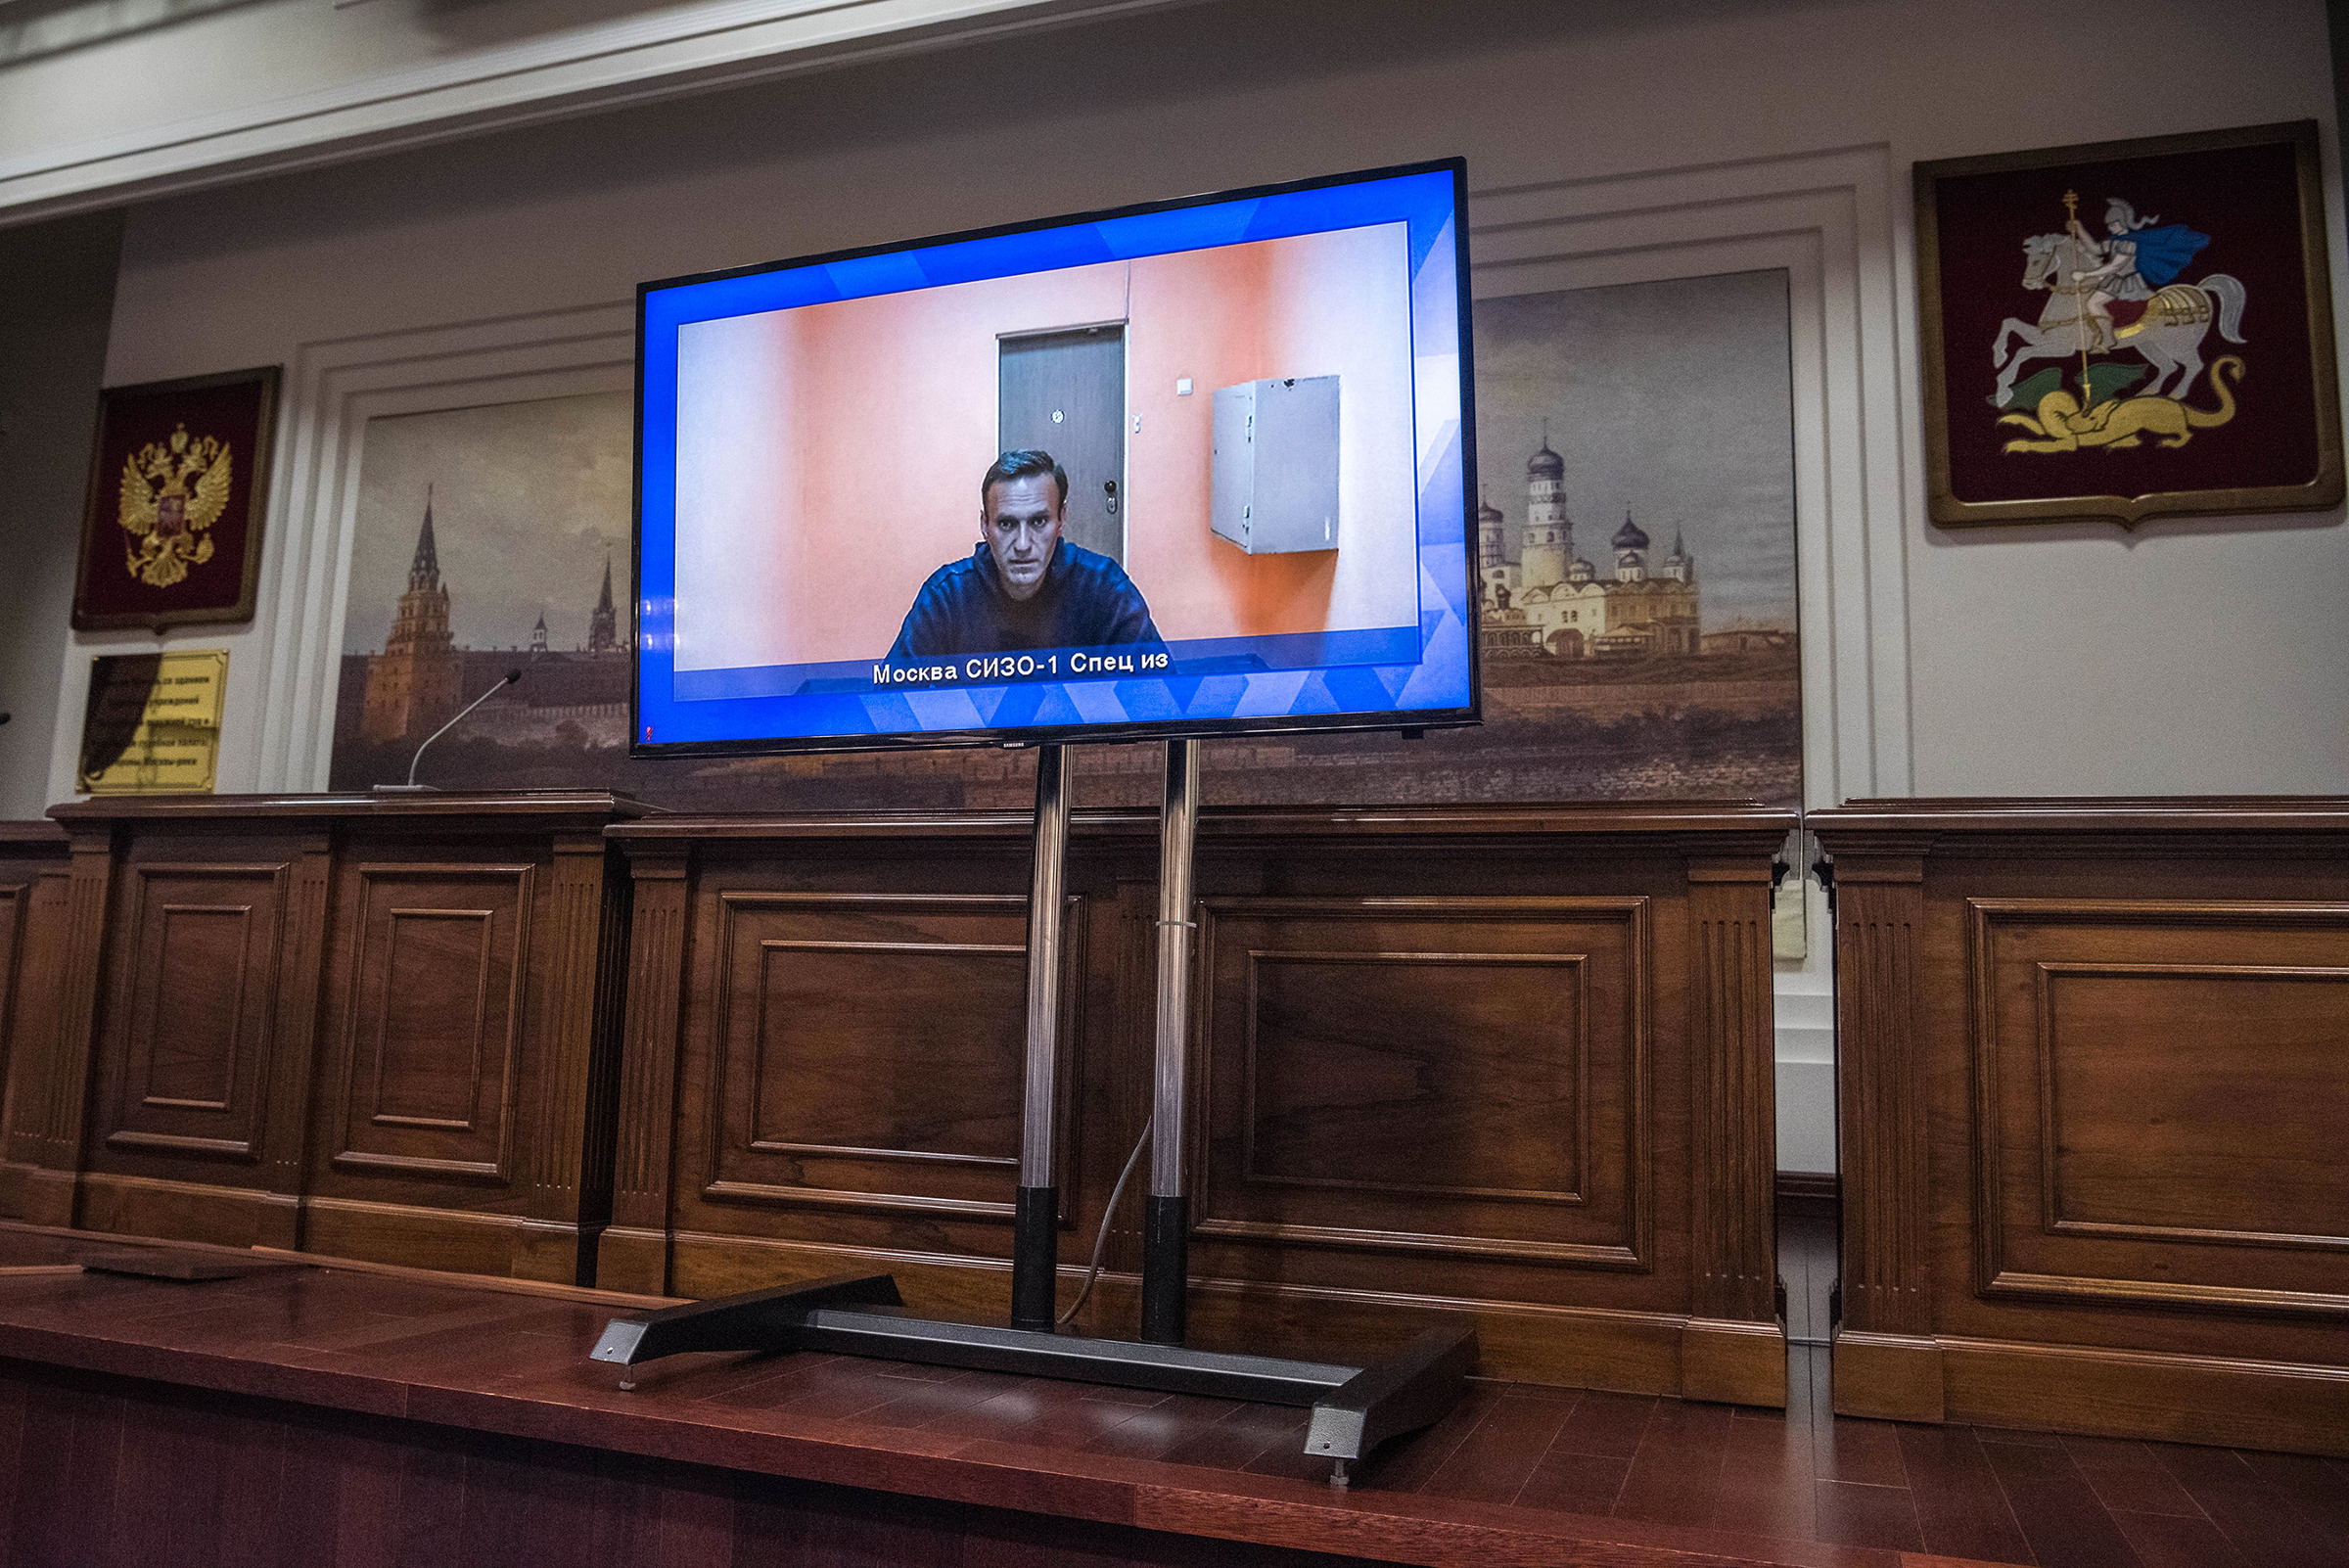 Russian opposition leader Alexei Navalny appears via video link for a court hearing, in which it was directed that he remain imprisoned, in Moscow on Jan. 28, 2021.